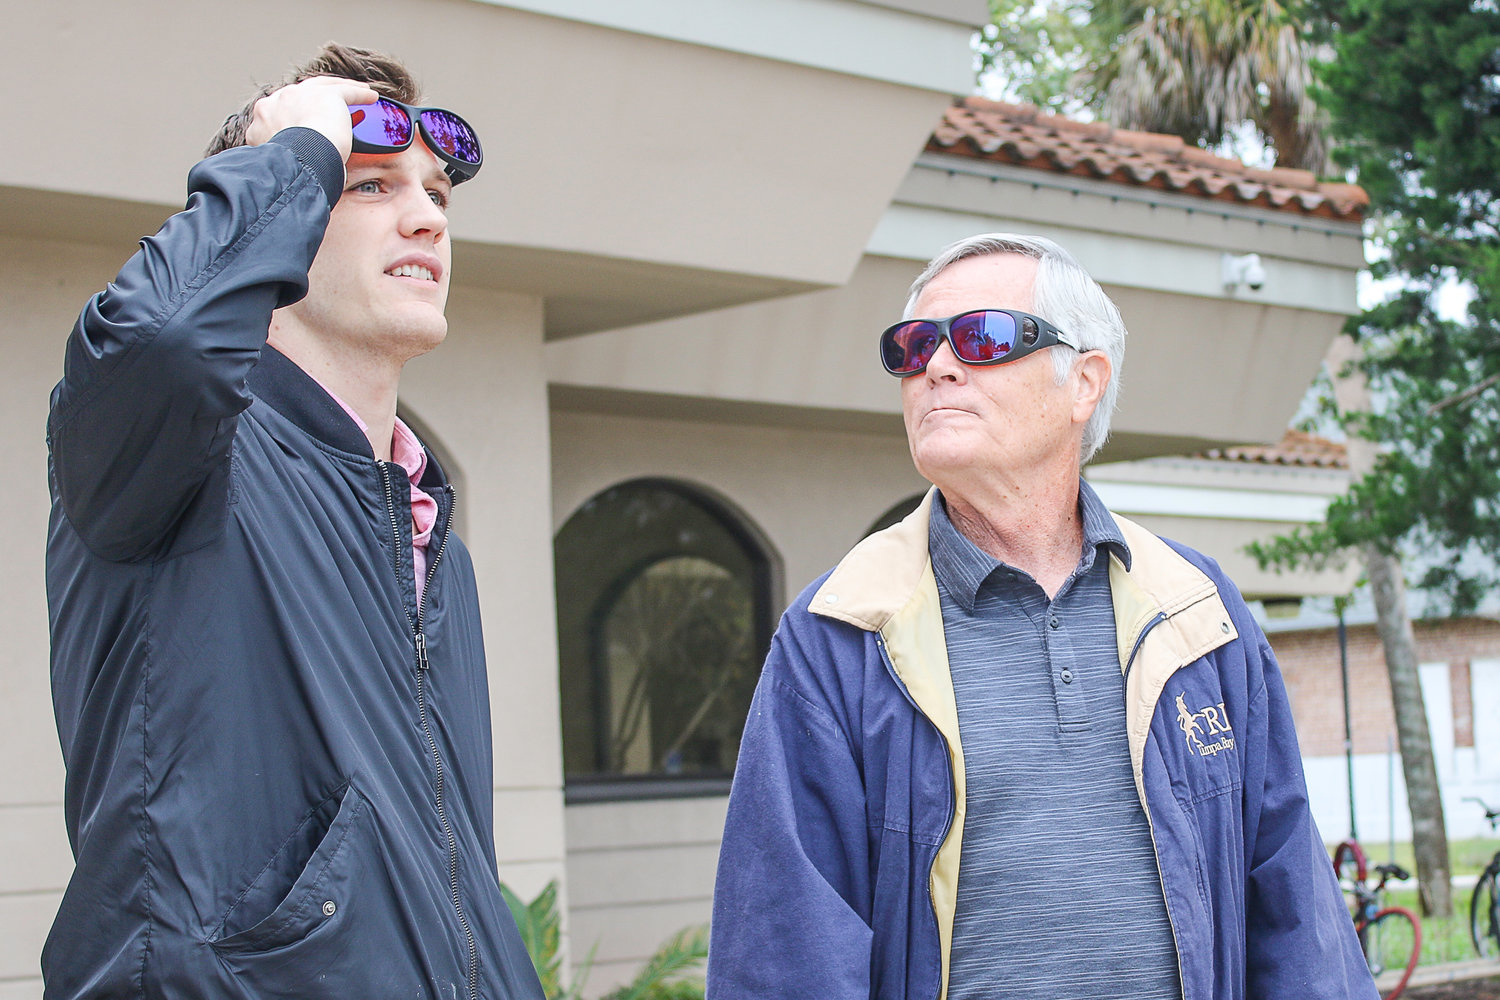 Mike McNabb, right, watches his son Jeff compare colors outside with and without EnChroma receptor sunglasses.